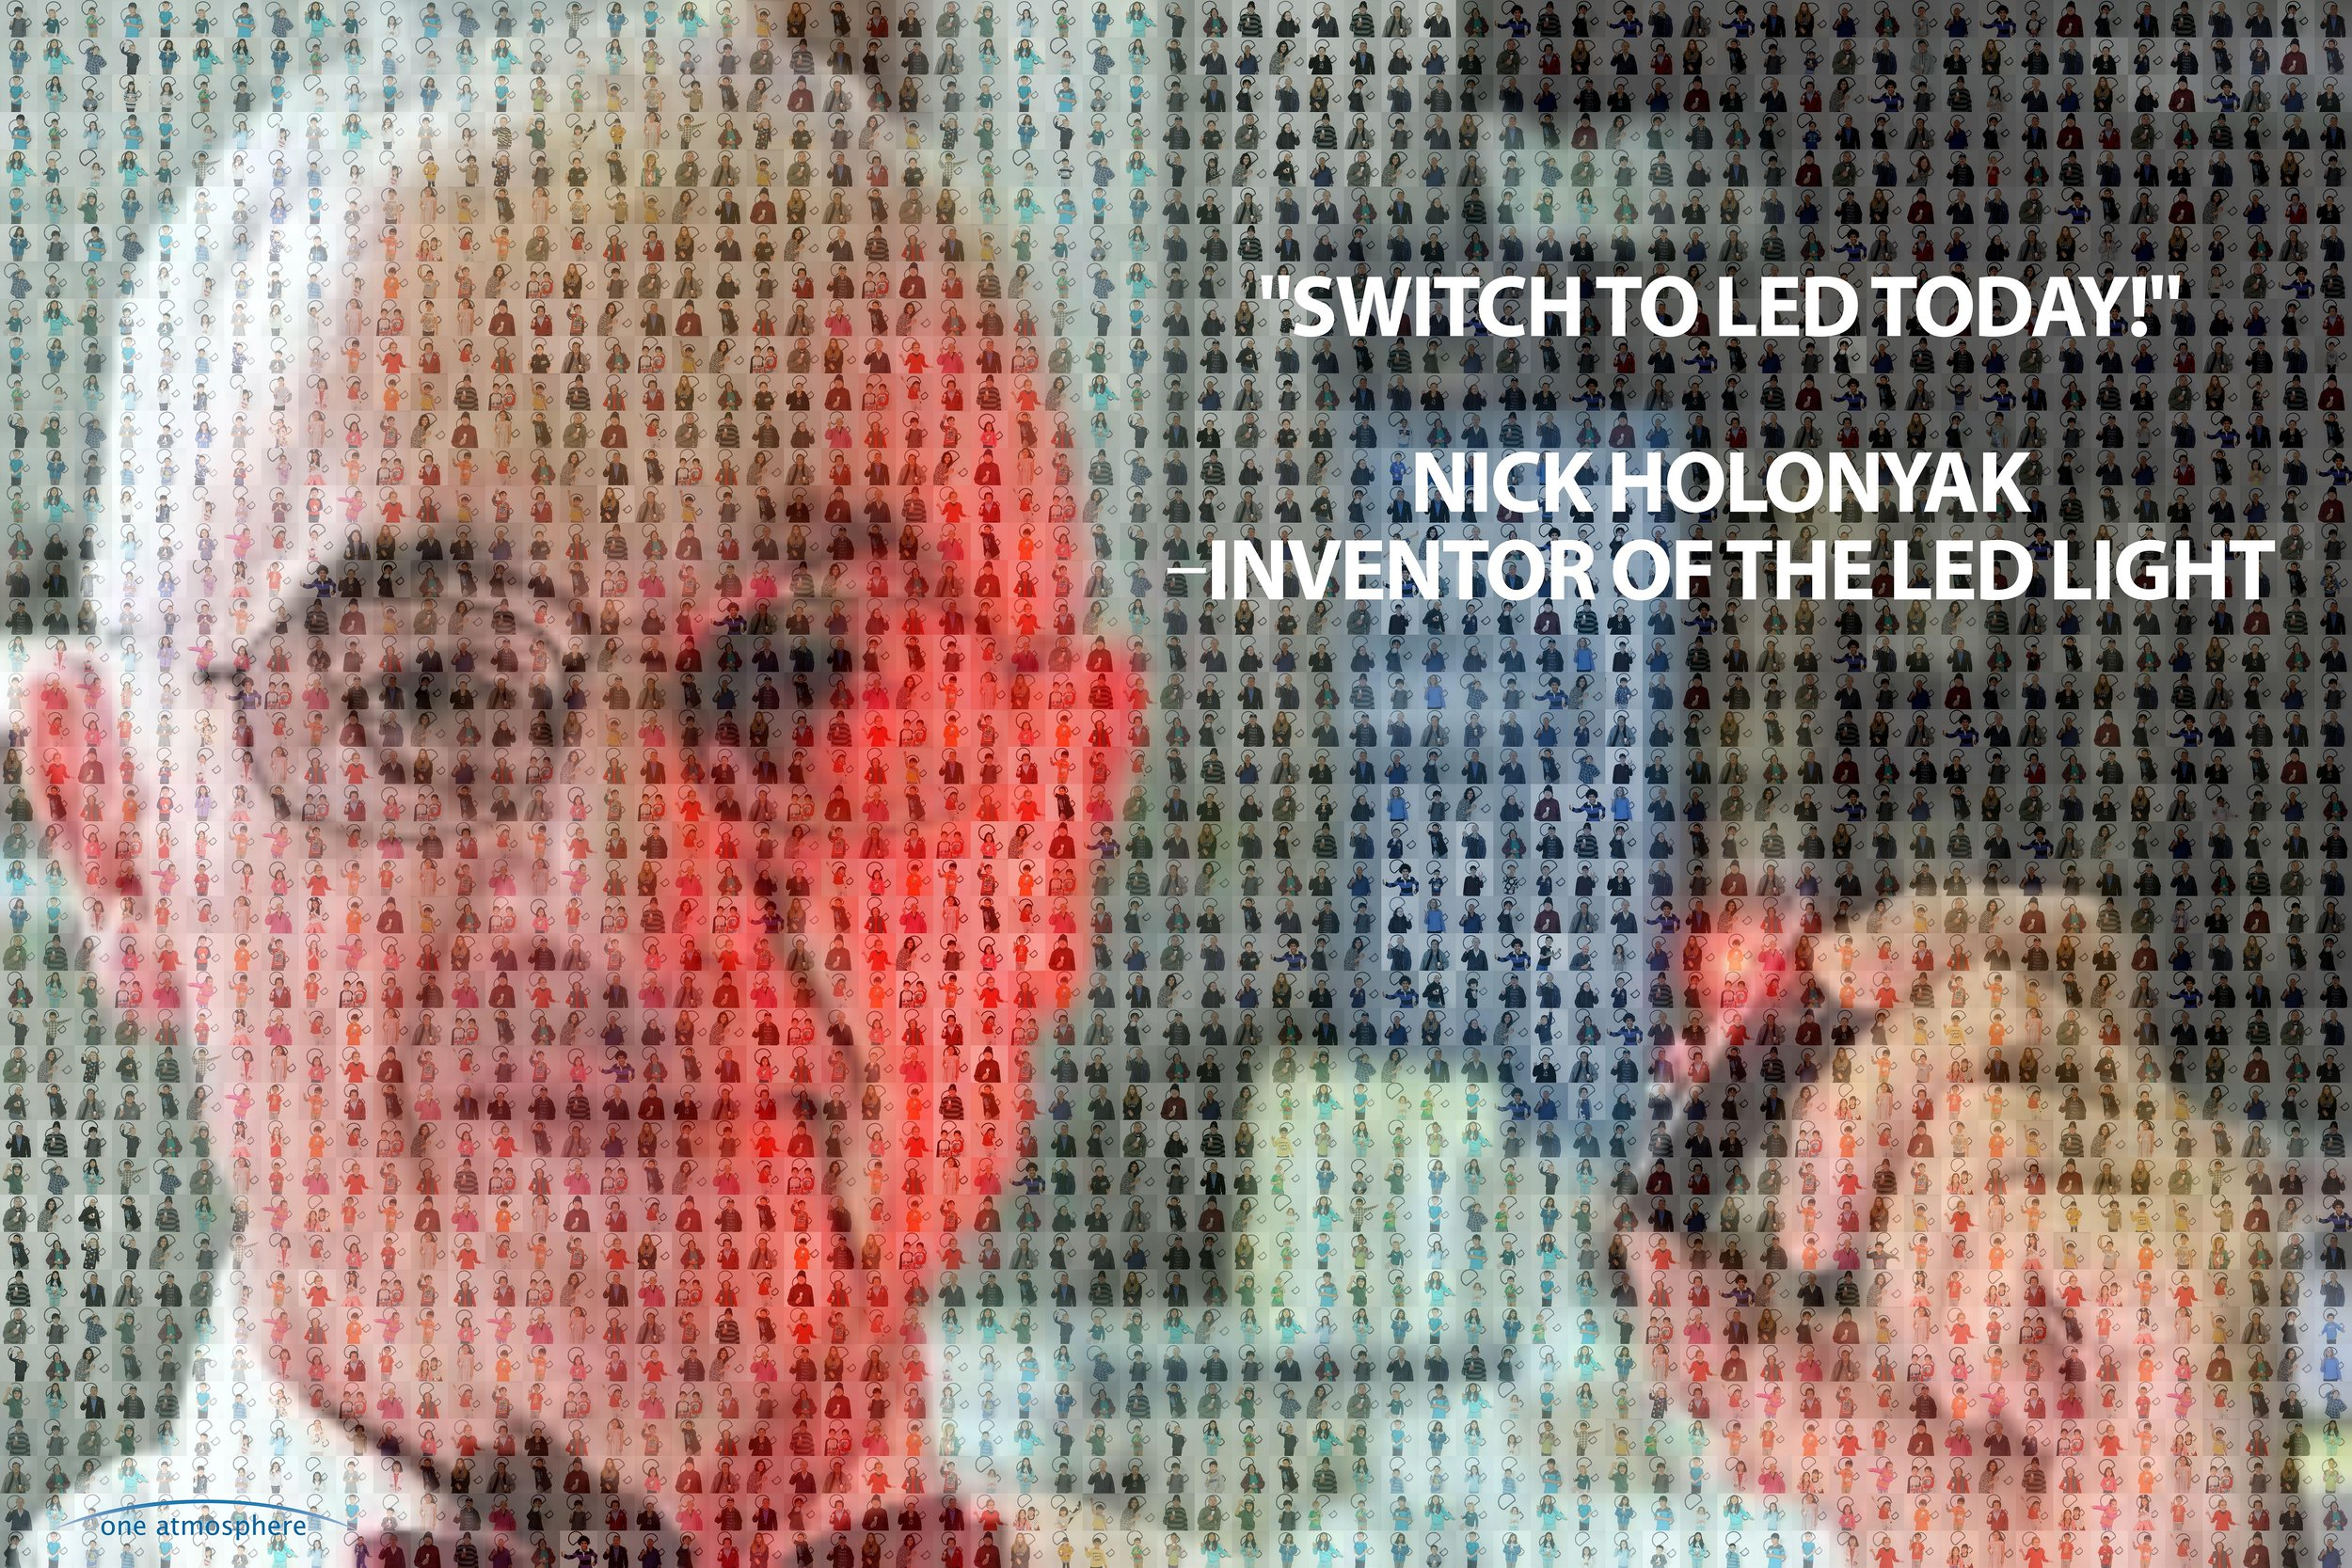 """LED bulbs should be """"put in use immediately ... I urge you to continue with your program, and wish to thank you and congratulate you for what you have done already."""" Nick Holonyak, inventor of the LED bulb, to One Atmosphere.    To view high resolution copy of mosaic,    click here   ."""